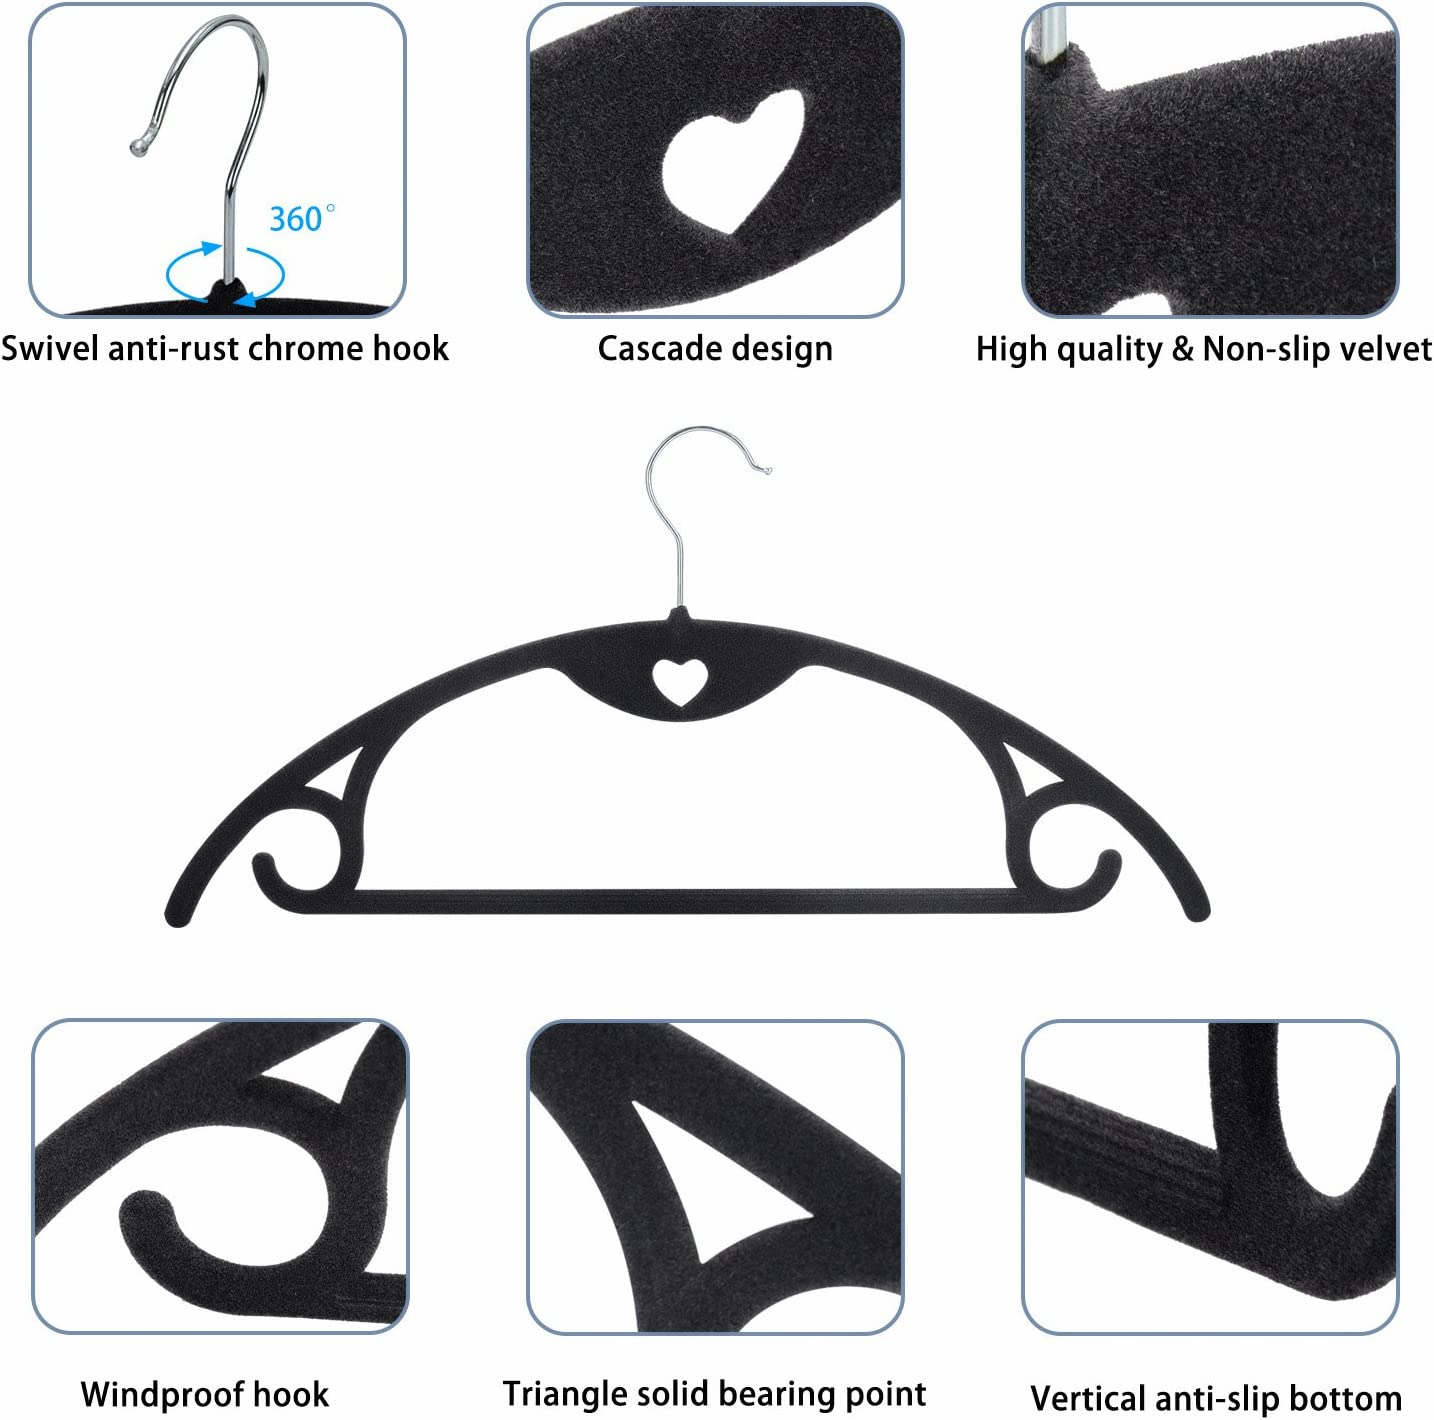 Non-Slip Suit Clothes Hangers Coat Hangers 30-Pack Ultra Thin Space Saving with Heavy Duty 360 Swivel Chrome Hook IEOKE Premium Velvet Hangers